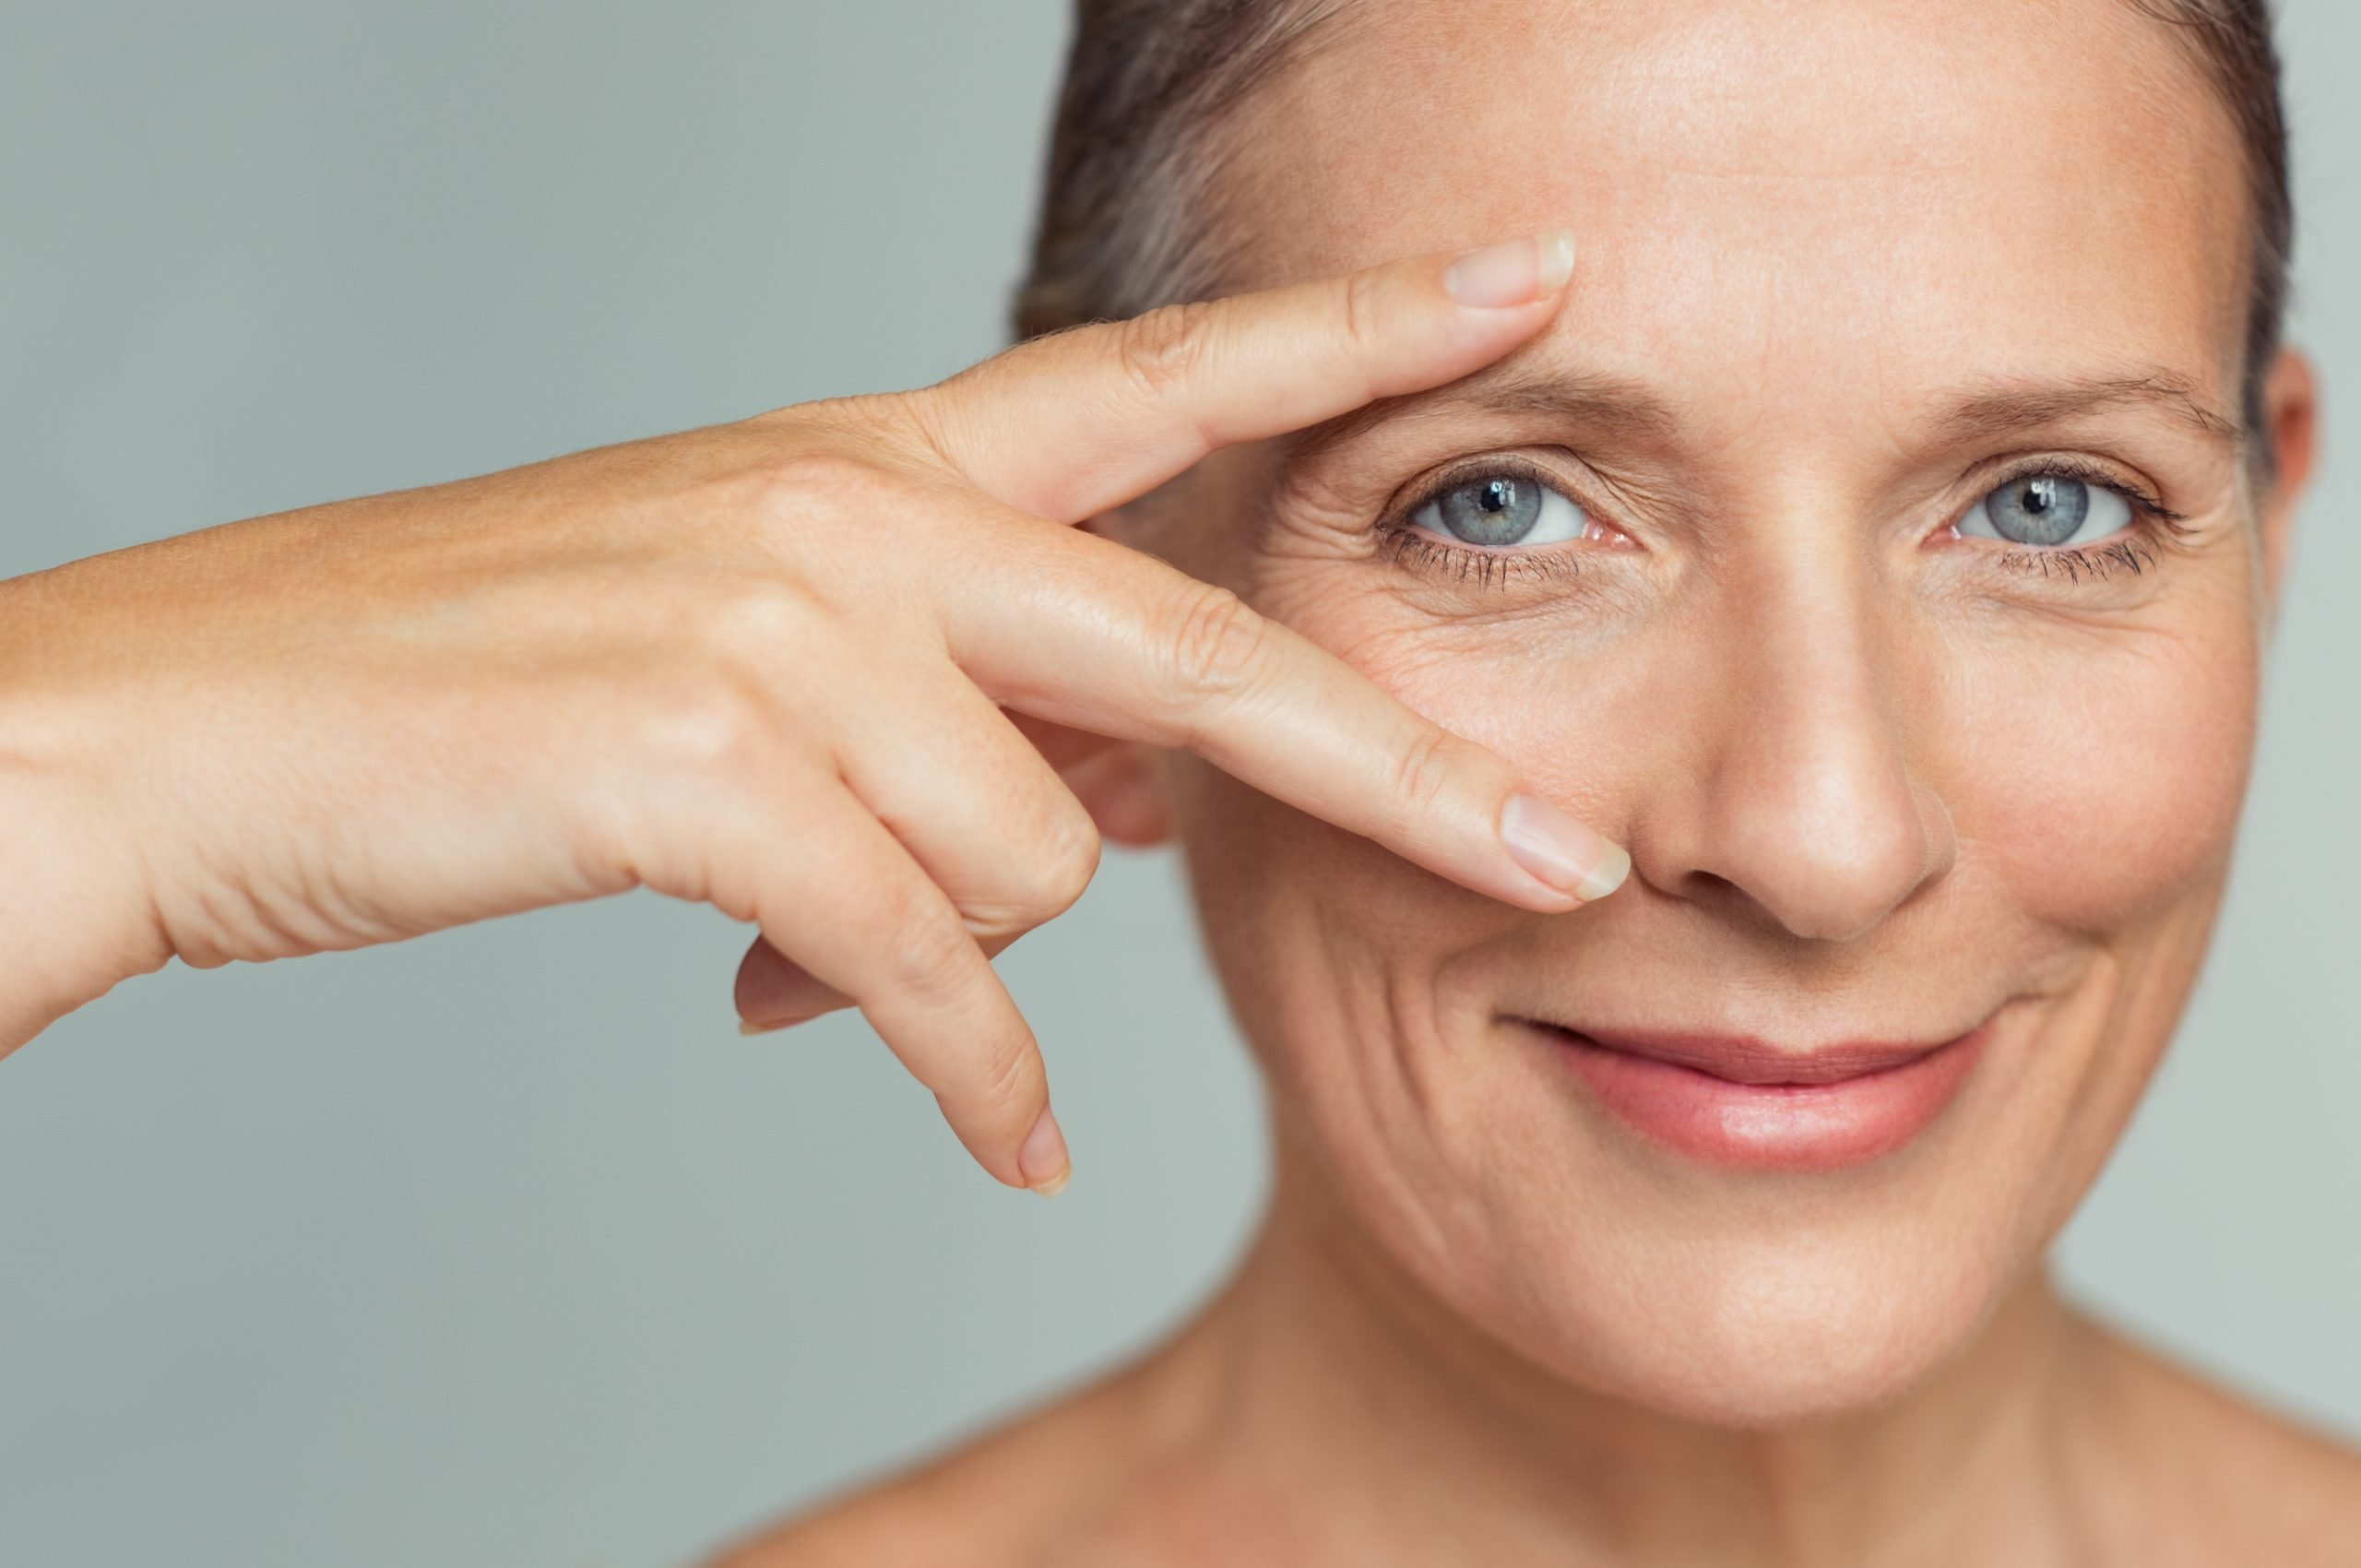 Eight Reasons Why You Should Consider Cosmetic Surgeries